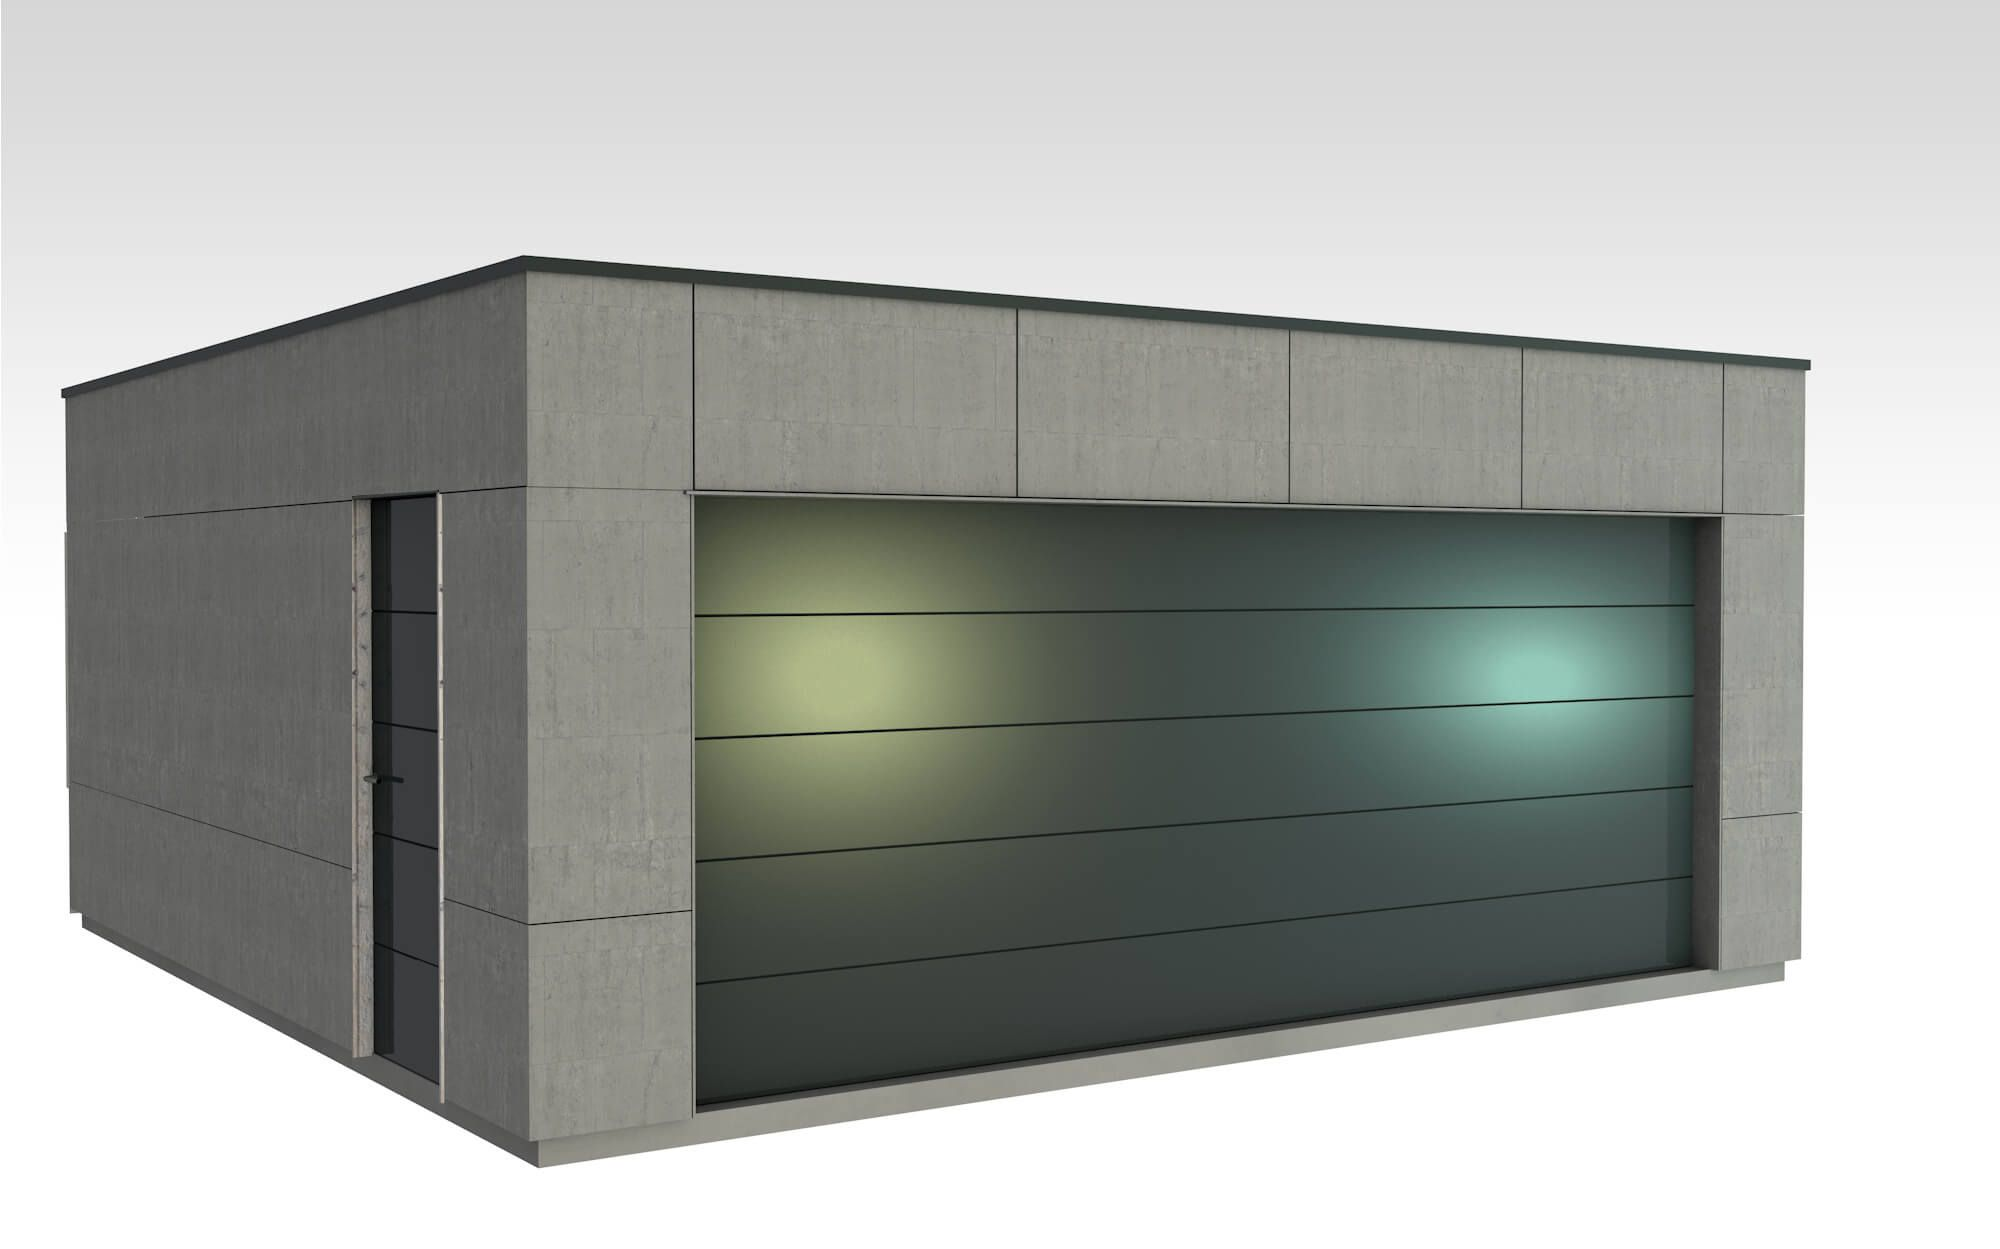 Etapes Construction Maison Rt 2012 Etape 8 Devis Et Visualisation Pour Garage Bois Garage Pinterest